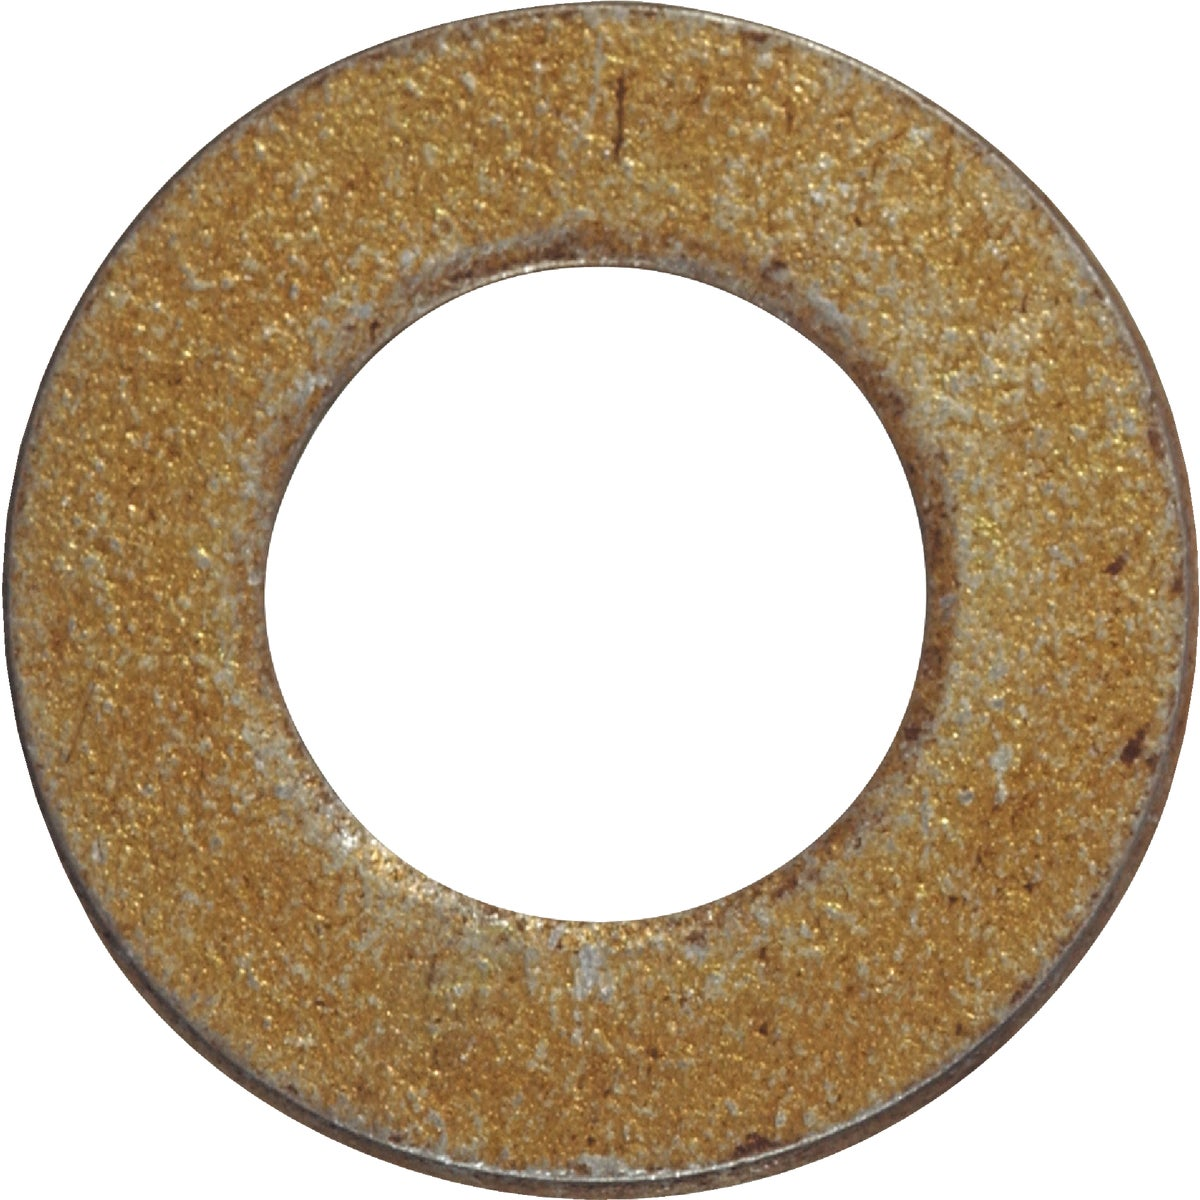 100 1/4 HRDND FLT WASHER - 280301 by Hillman Fastener